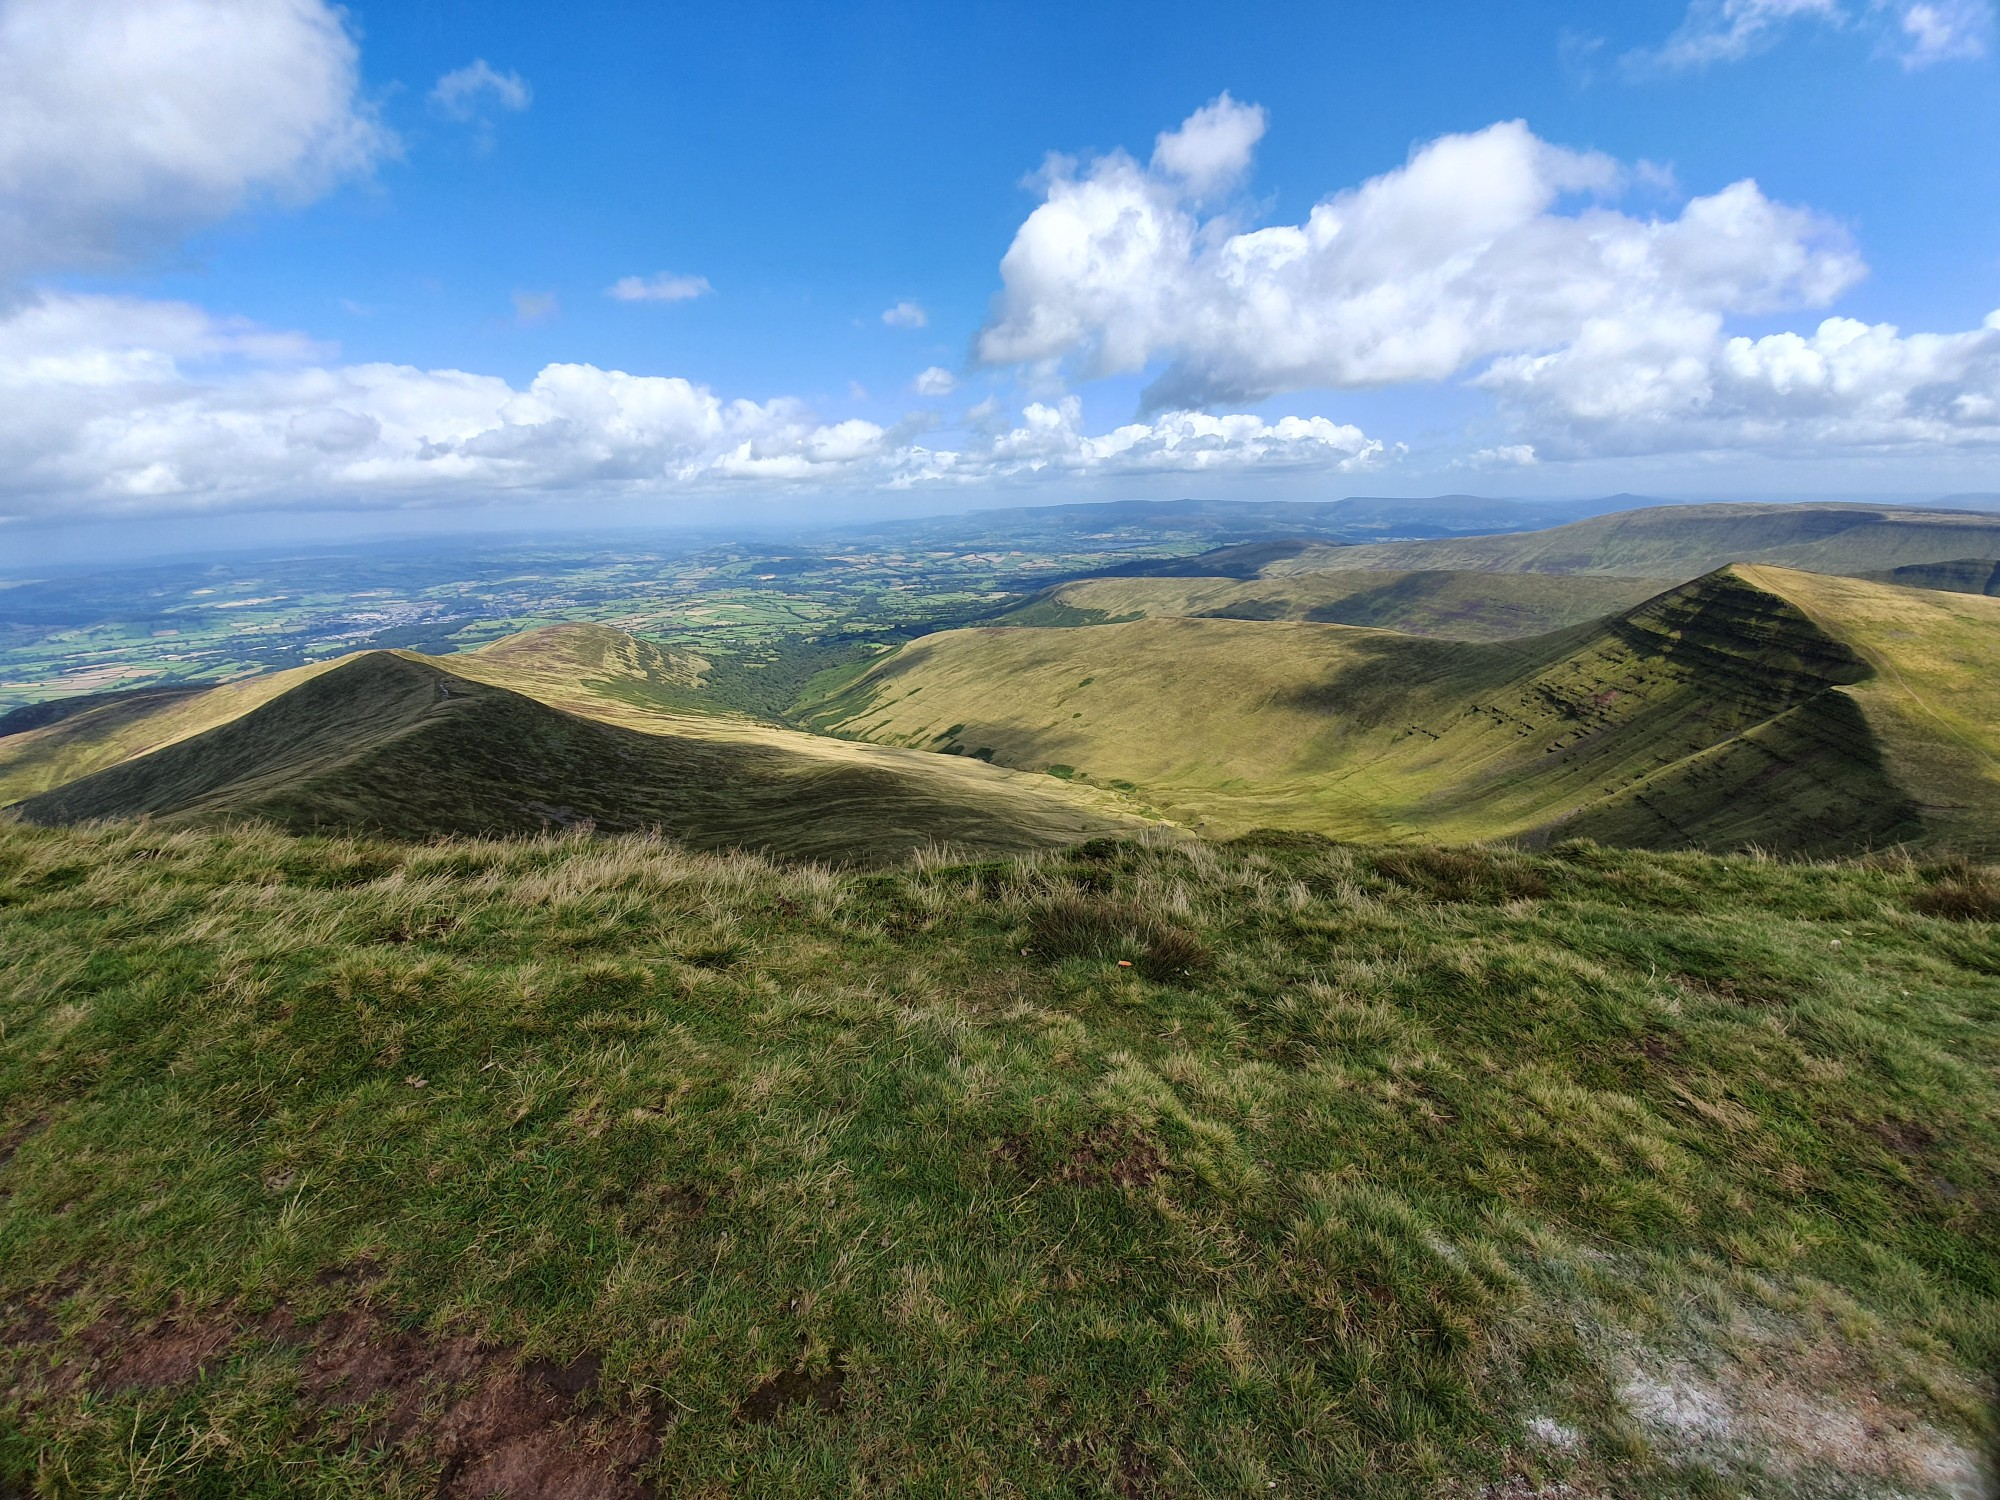 Brecon Beacons – Wales' Must-See National Park